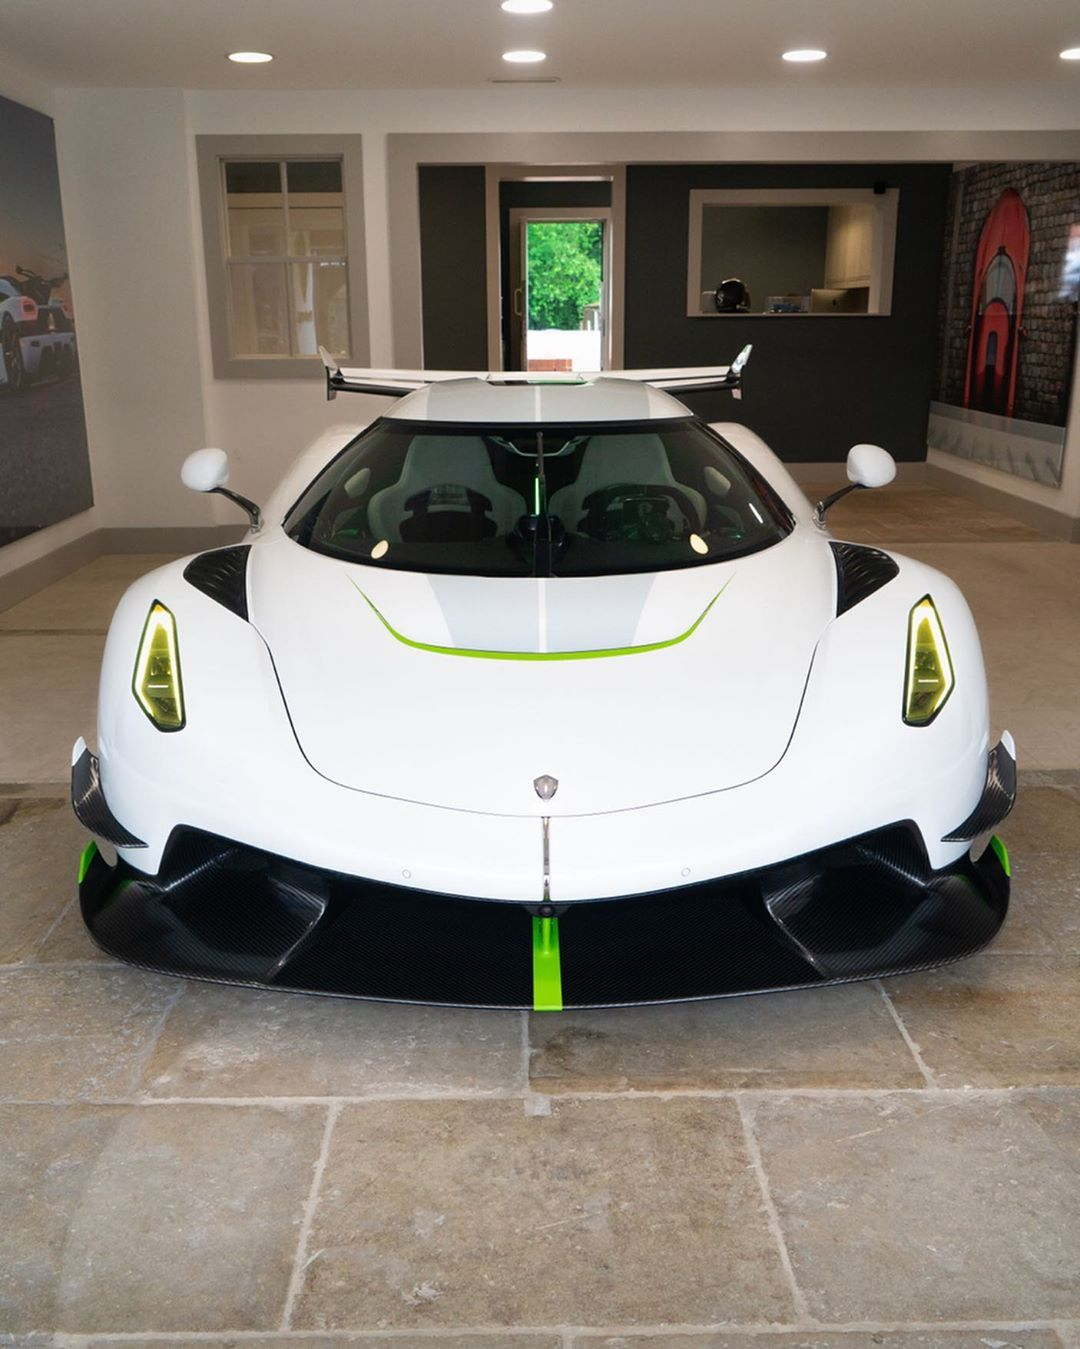 Sw Sports Car Koenigsegg Toyota: A Beautiful Set Of Pictures Showing The Jesko #251's